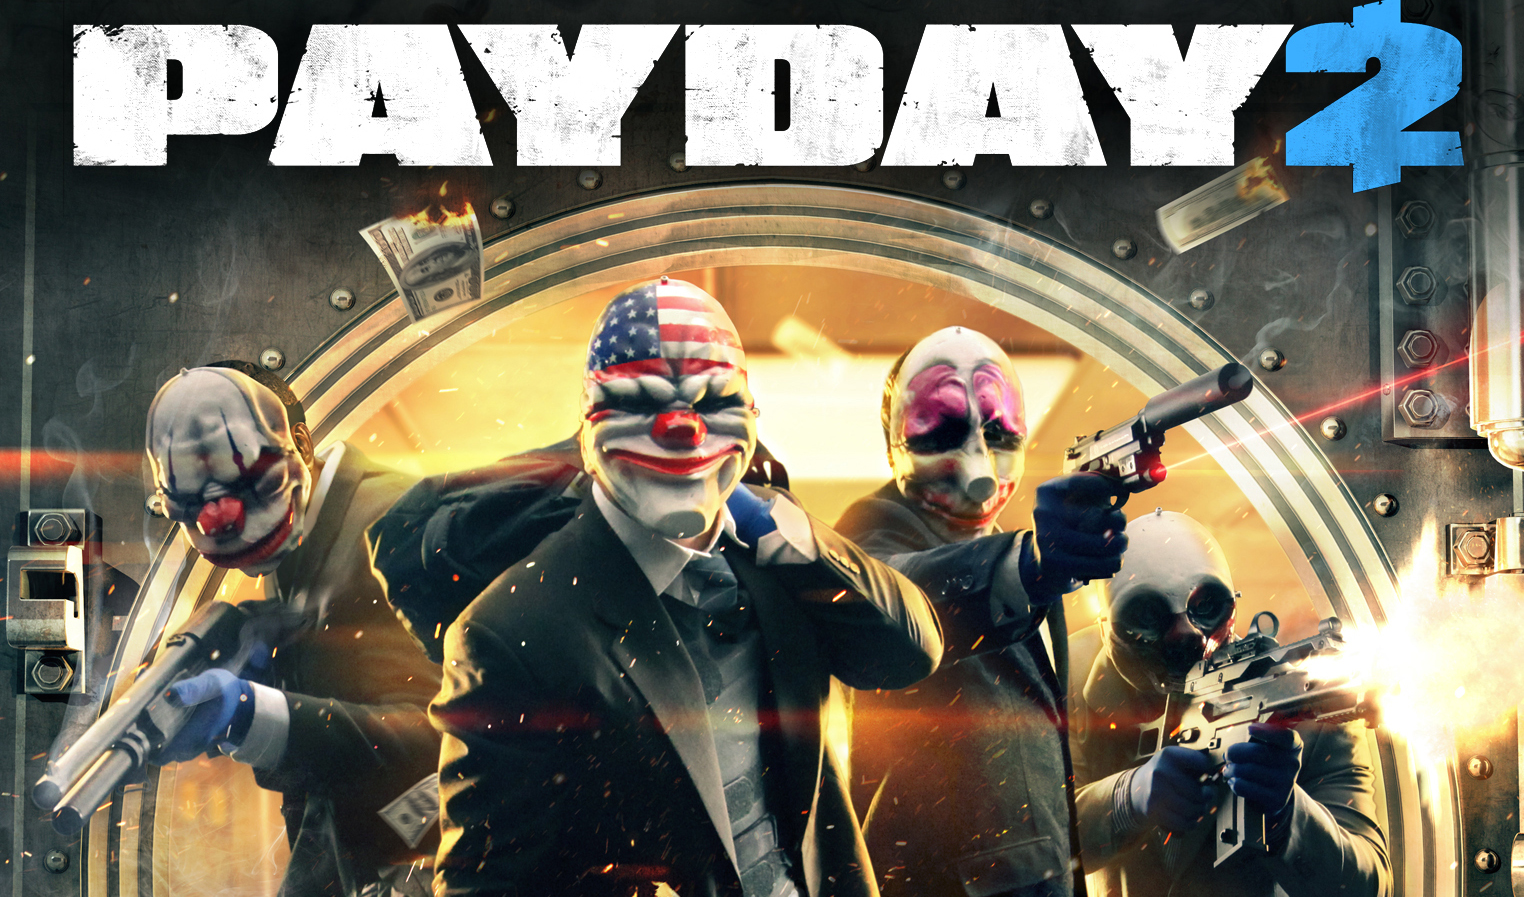 You may know Payday 2 as that game everyone plays while waiting for GTA V to bring heists.